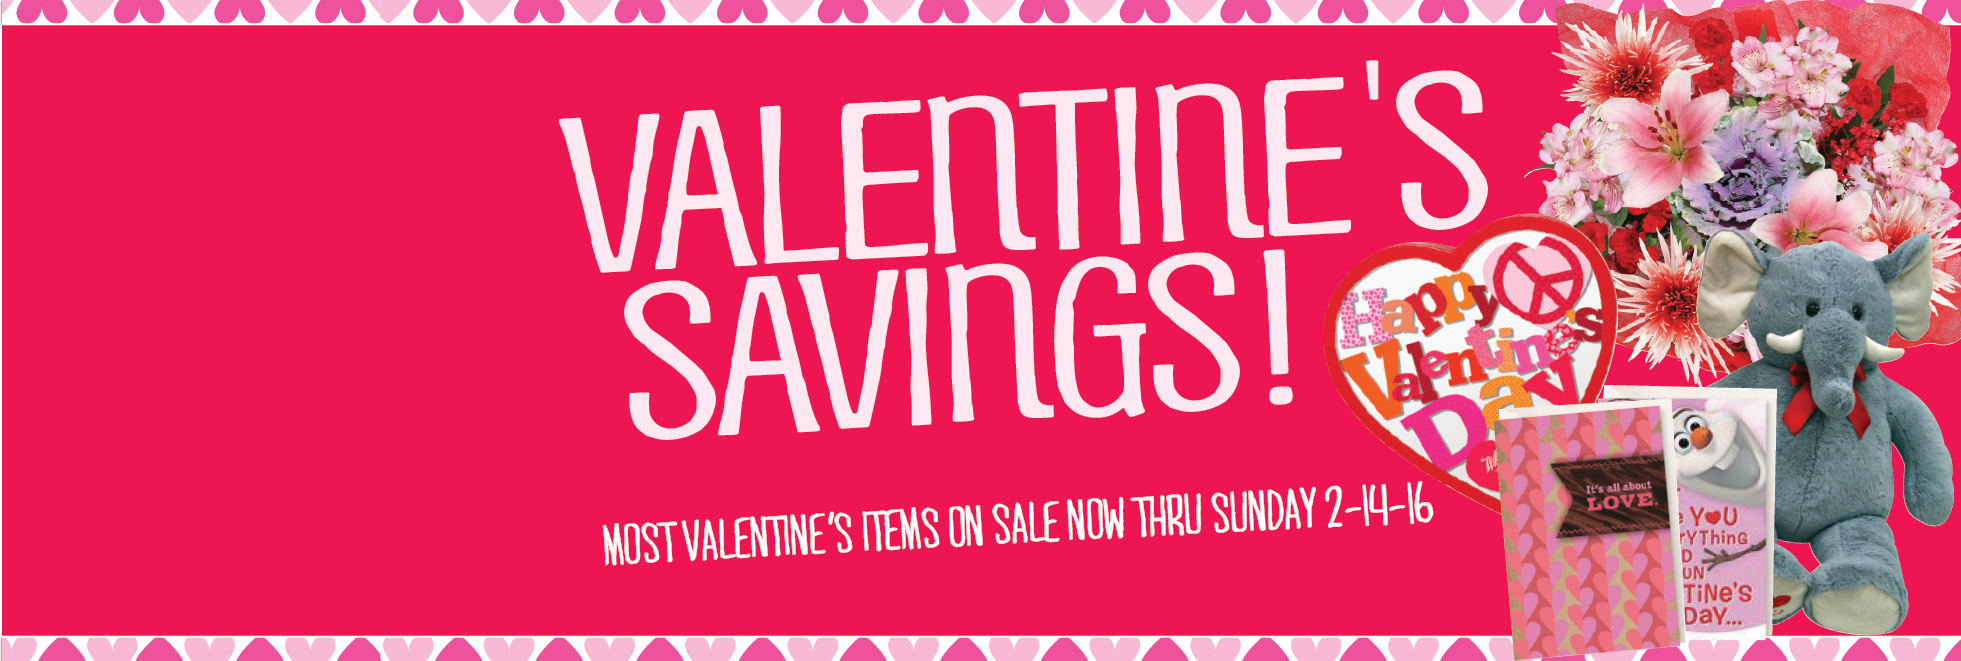 Valentine's Day Savings